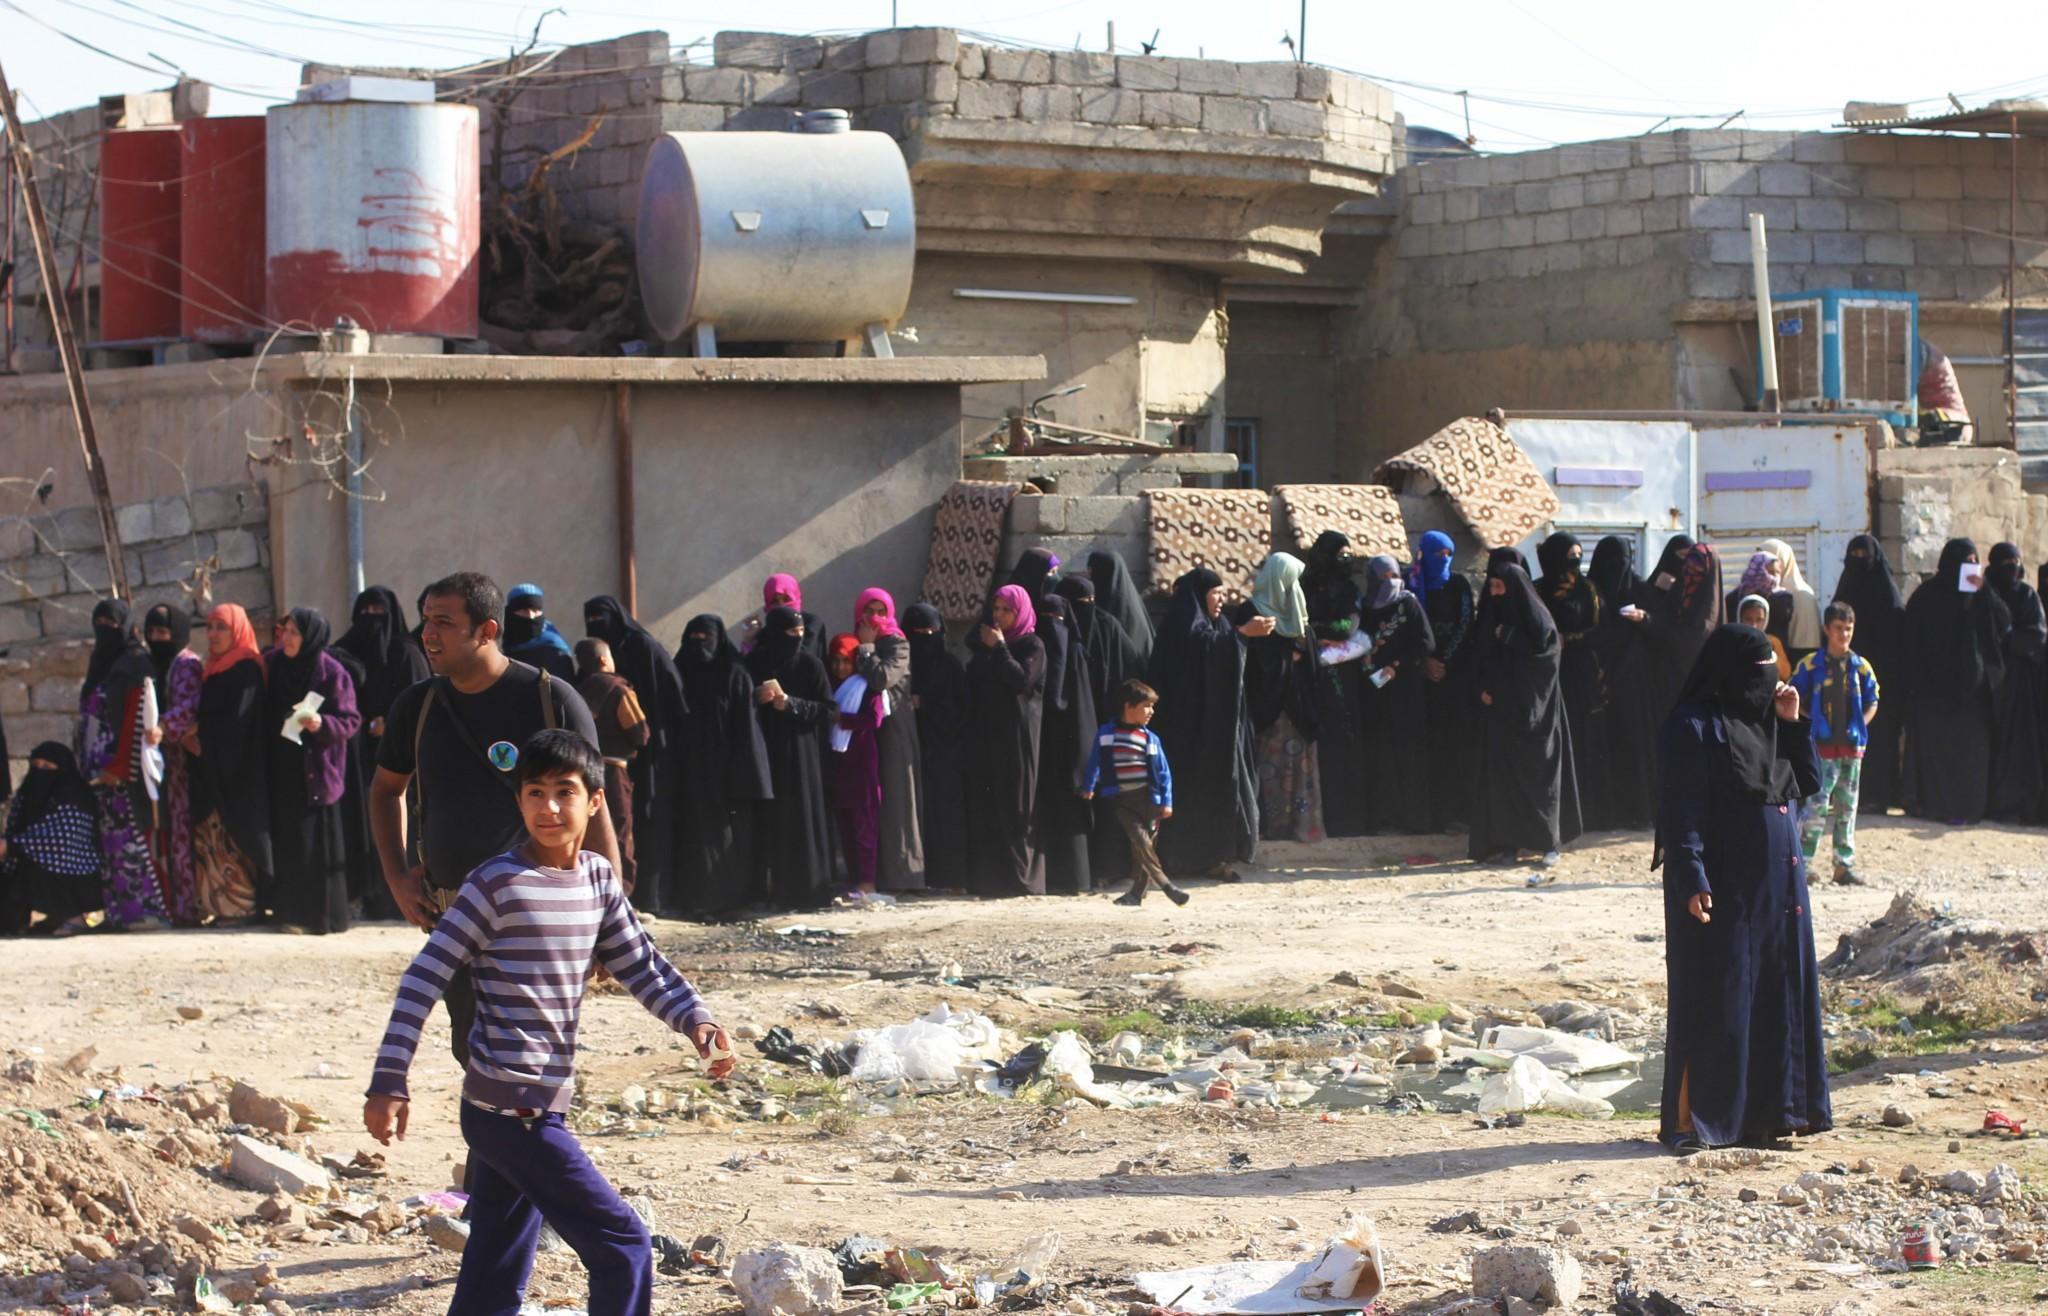 Women lined up waiting to get aid from Iraqi interiror ministry. (Ash Gallagher for Yahoo News)